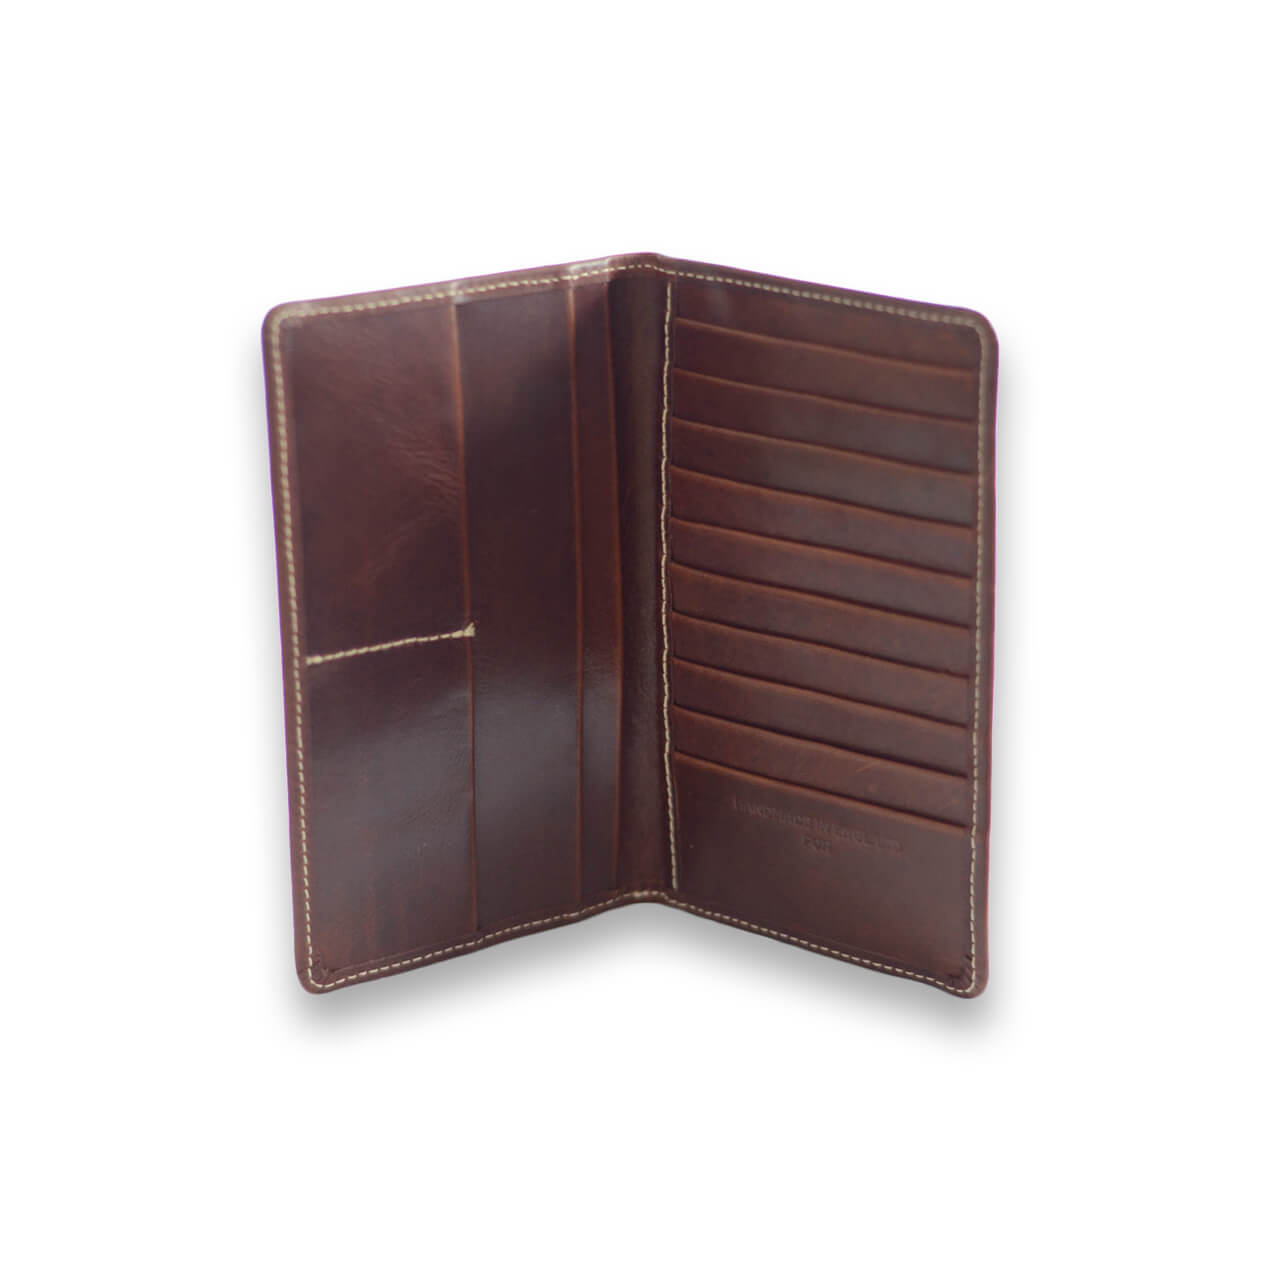 Tall Wallet in Brown - Will Bees Bespoke